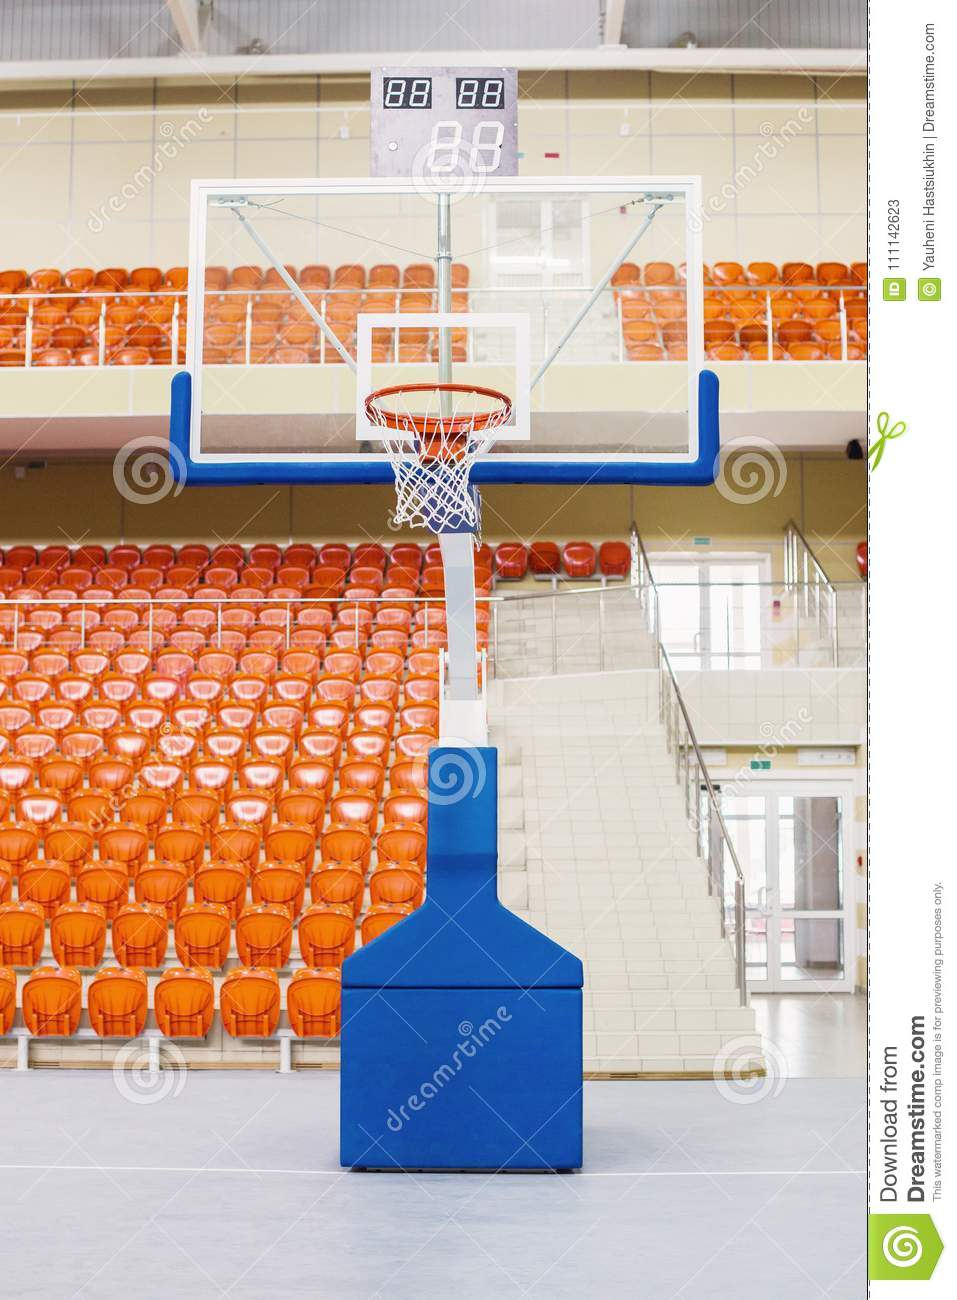 Basketball Chairs Ring And Shield For Playing Basketball Orange Chairs Stand In A